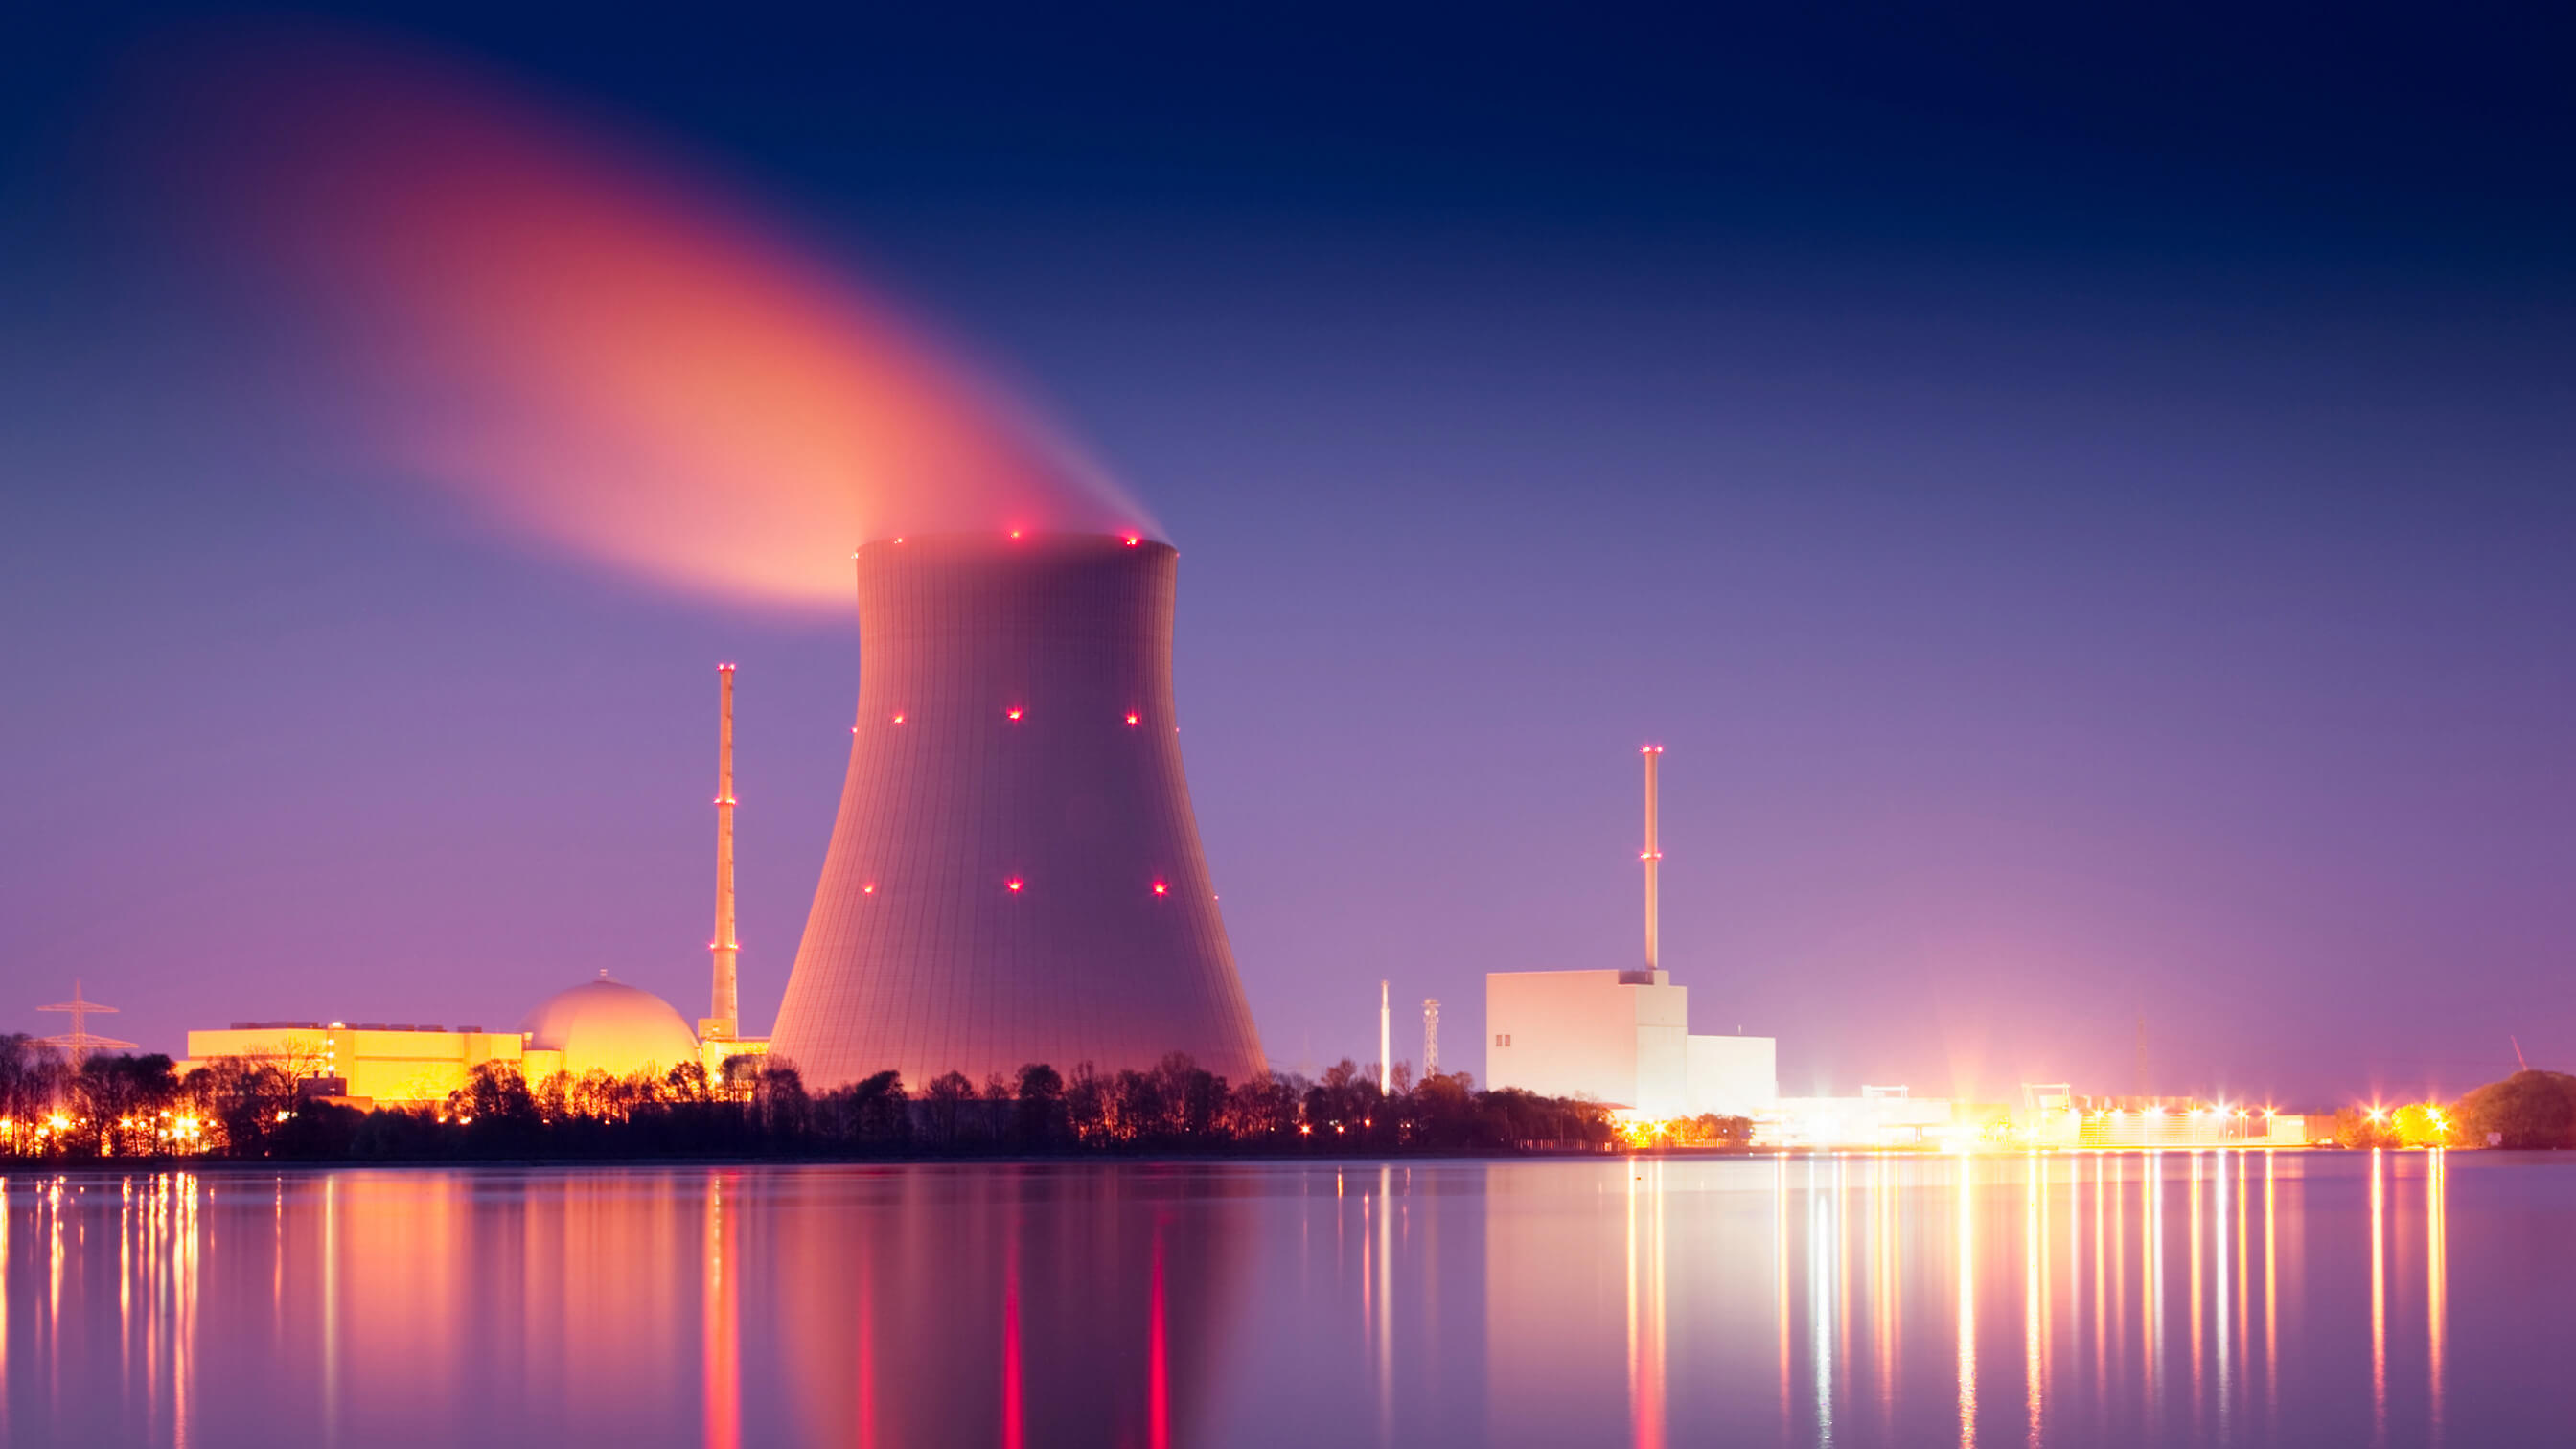 Critical power for nuclear plant